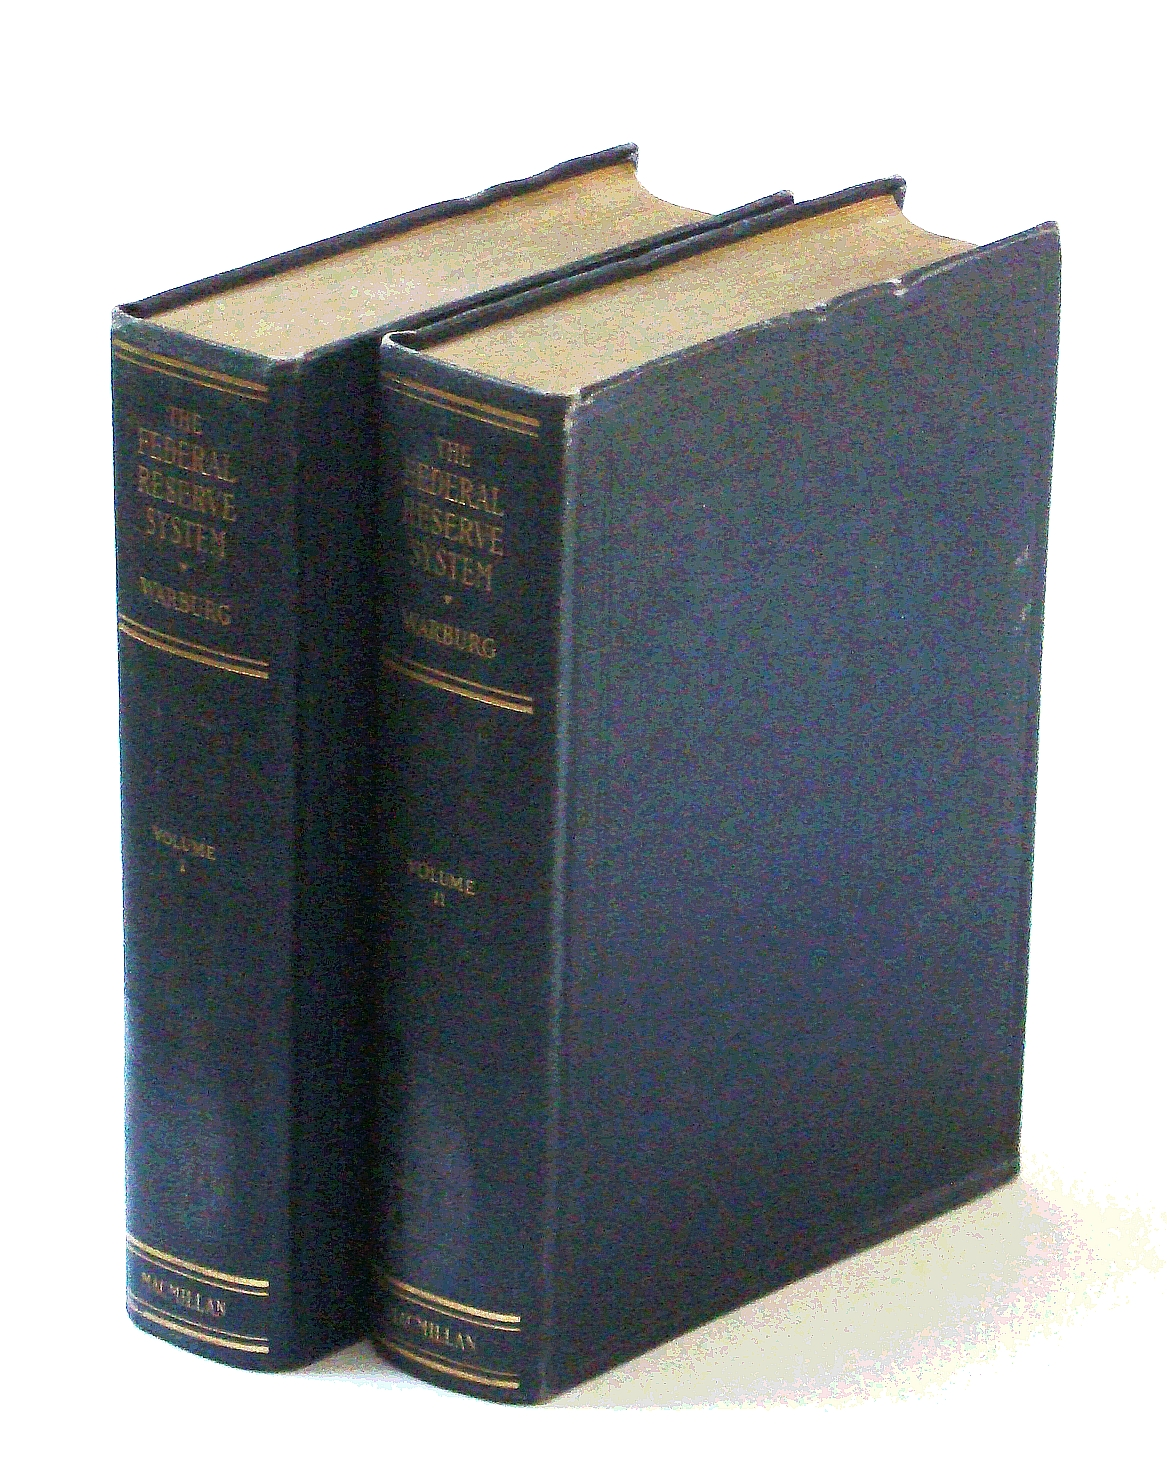 Federal Reserve System, Its Origin and Growth. Reflections and Recollections (2 volumes)